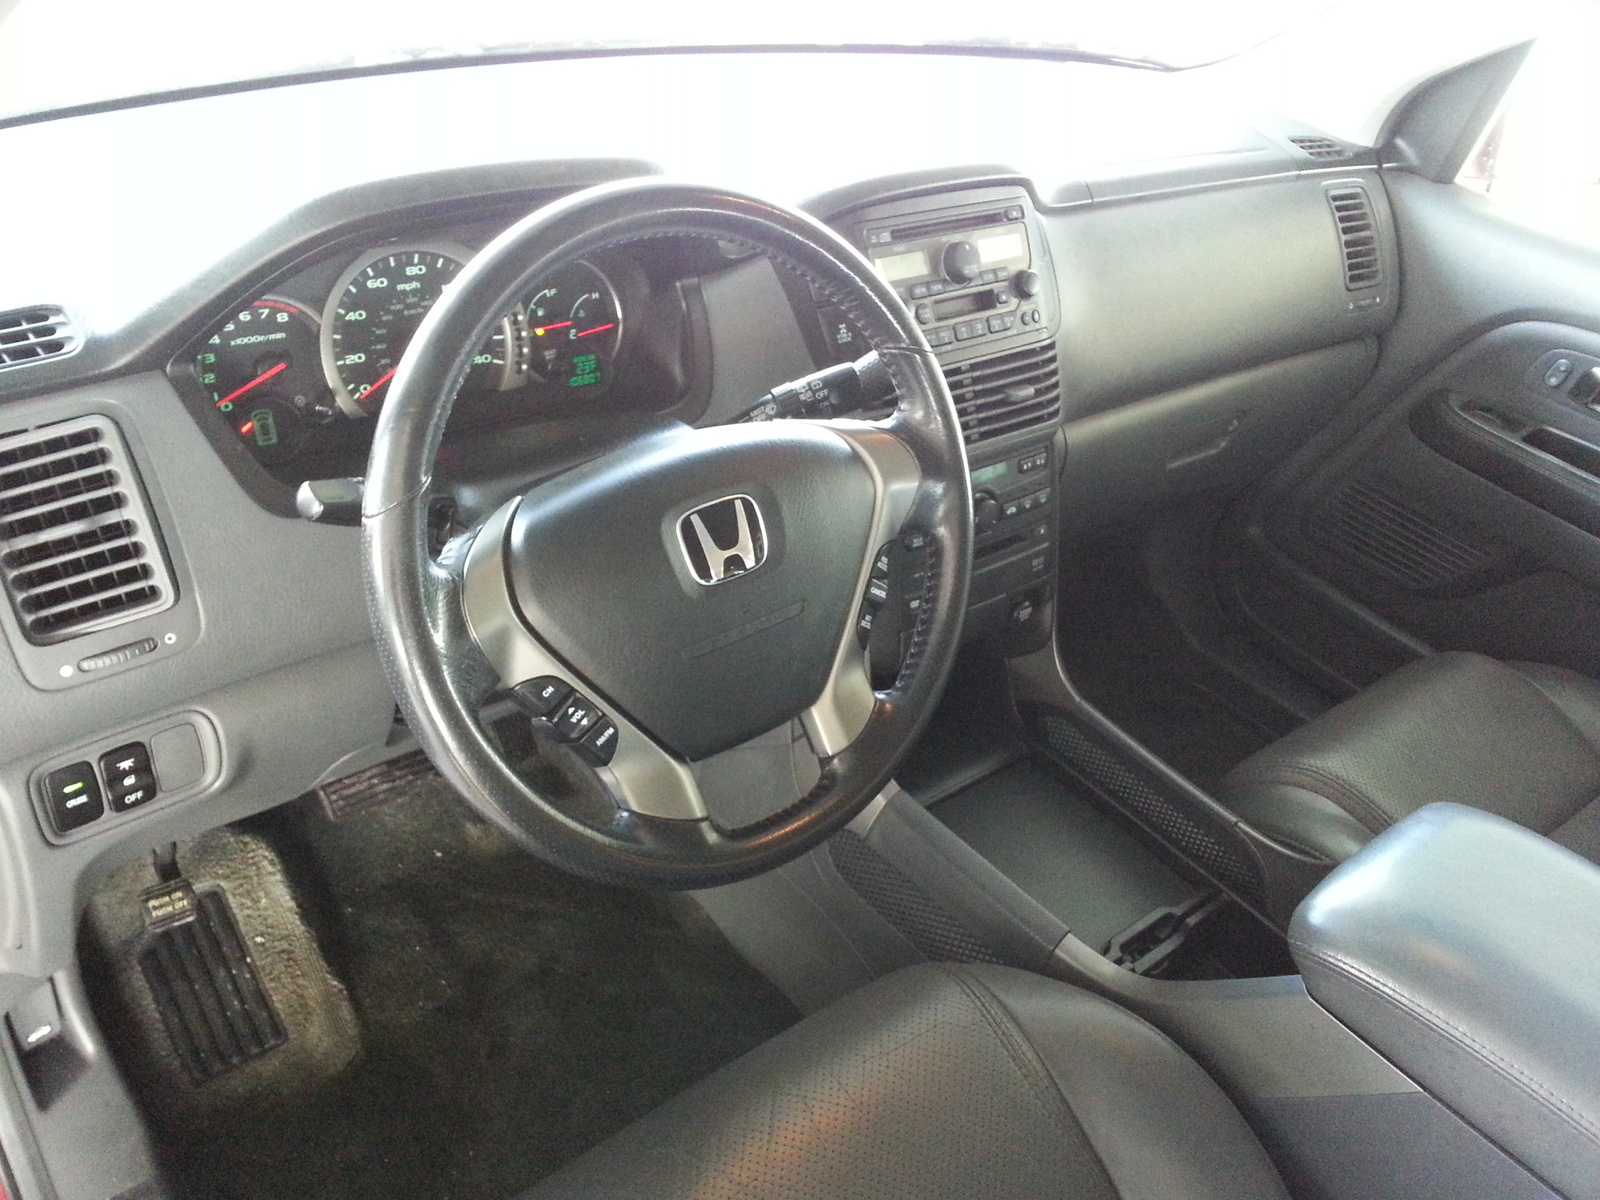 2003 honda pilot suv consumer reviews autos. Black Bedroom Furniture Sets. Home Design Ideas